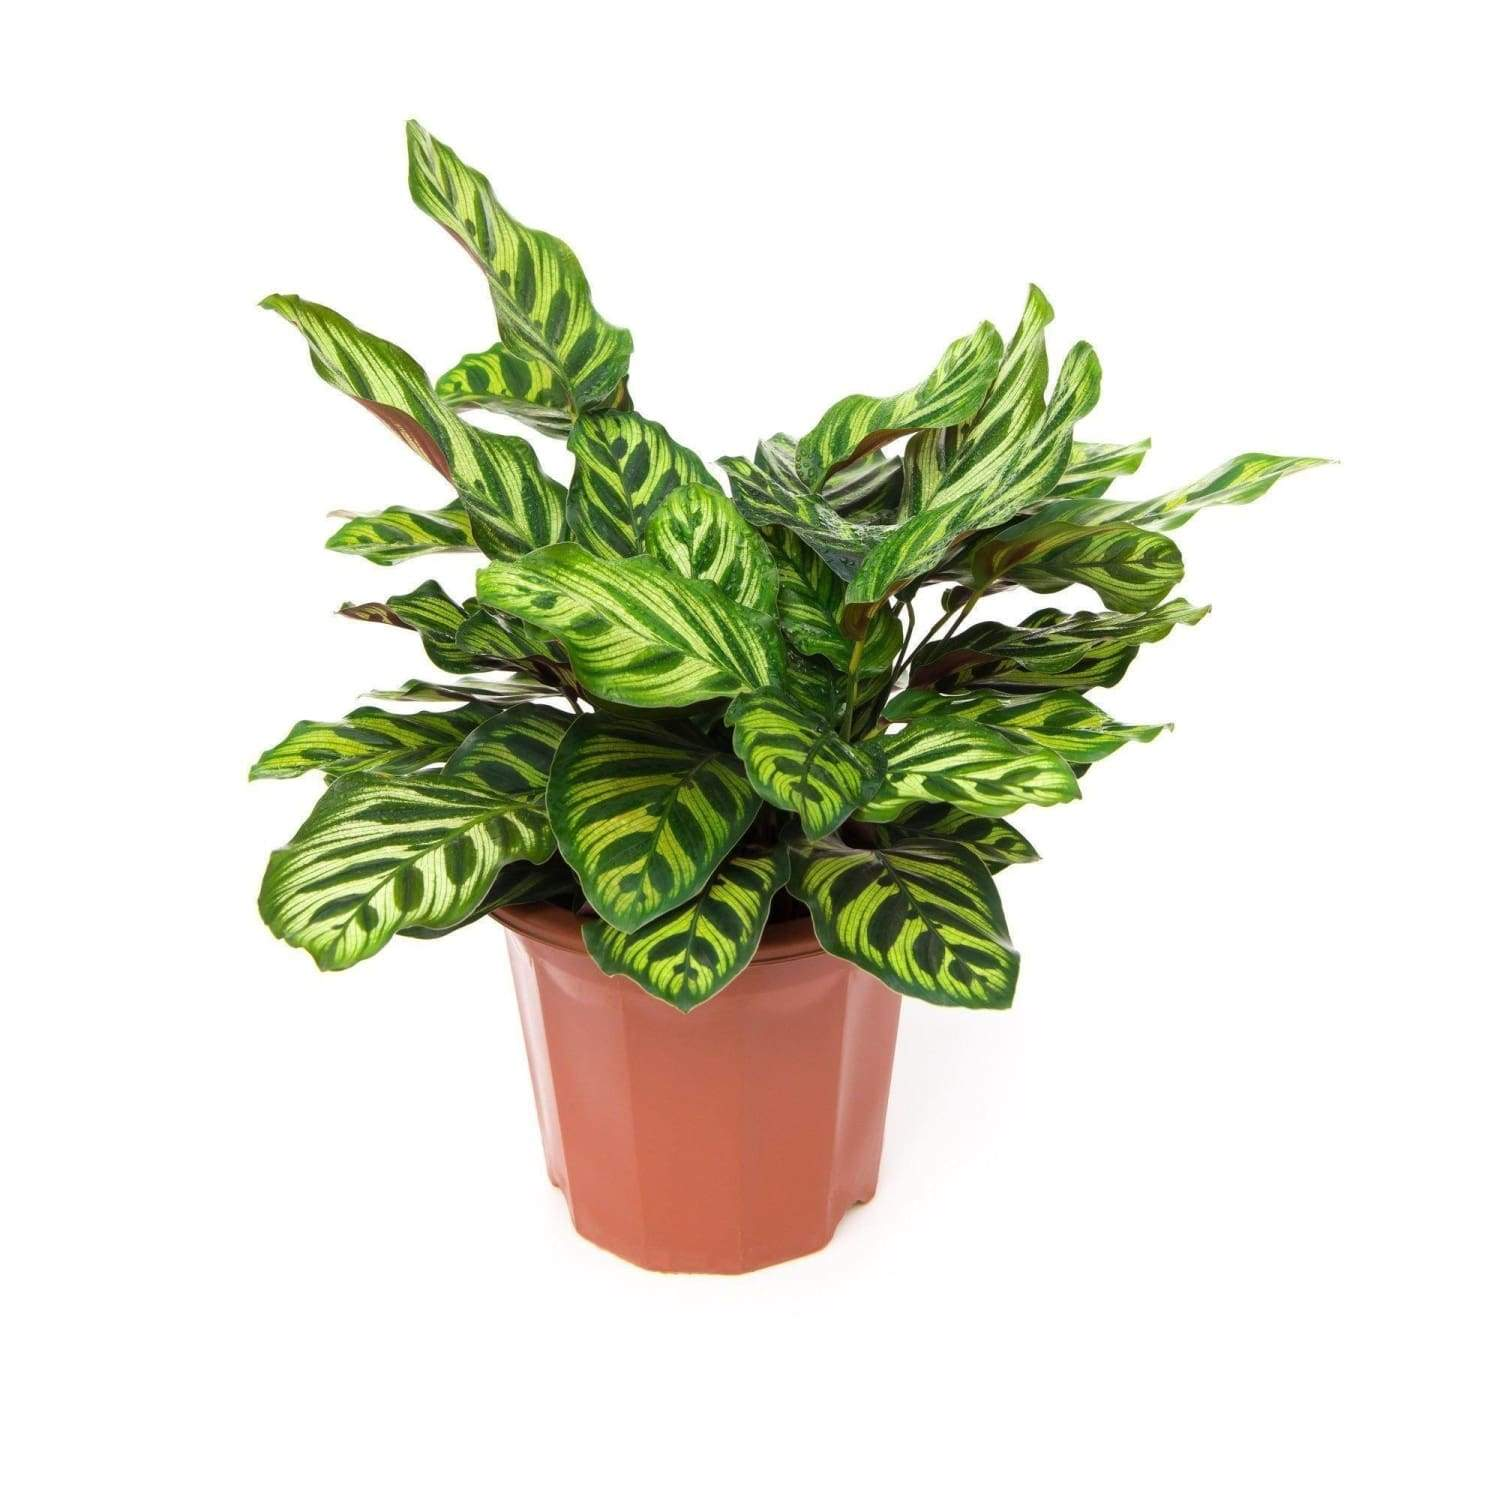 Why Calathea Makes the Most Beautiful Decorative Houseplant